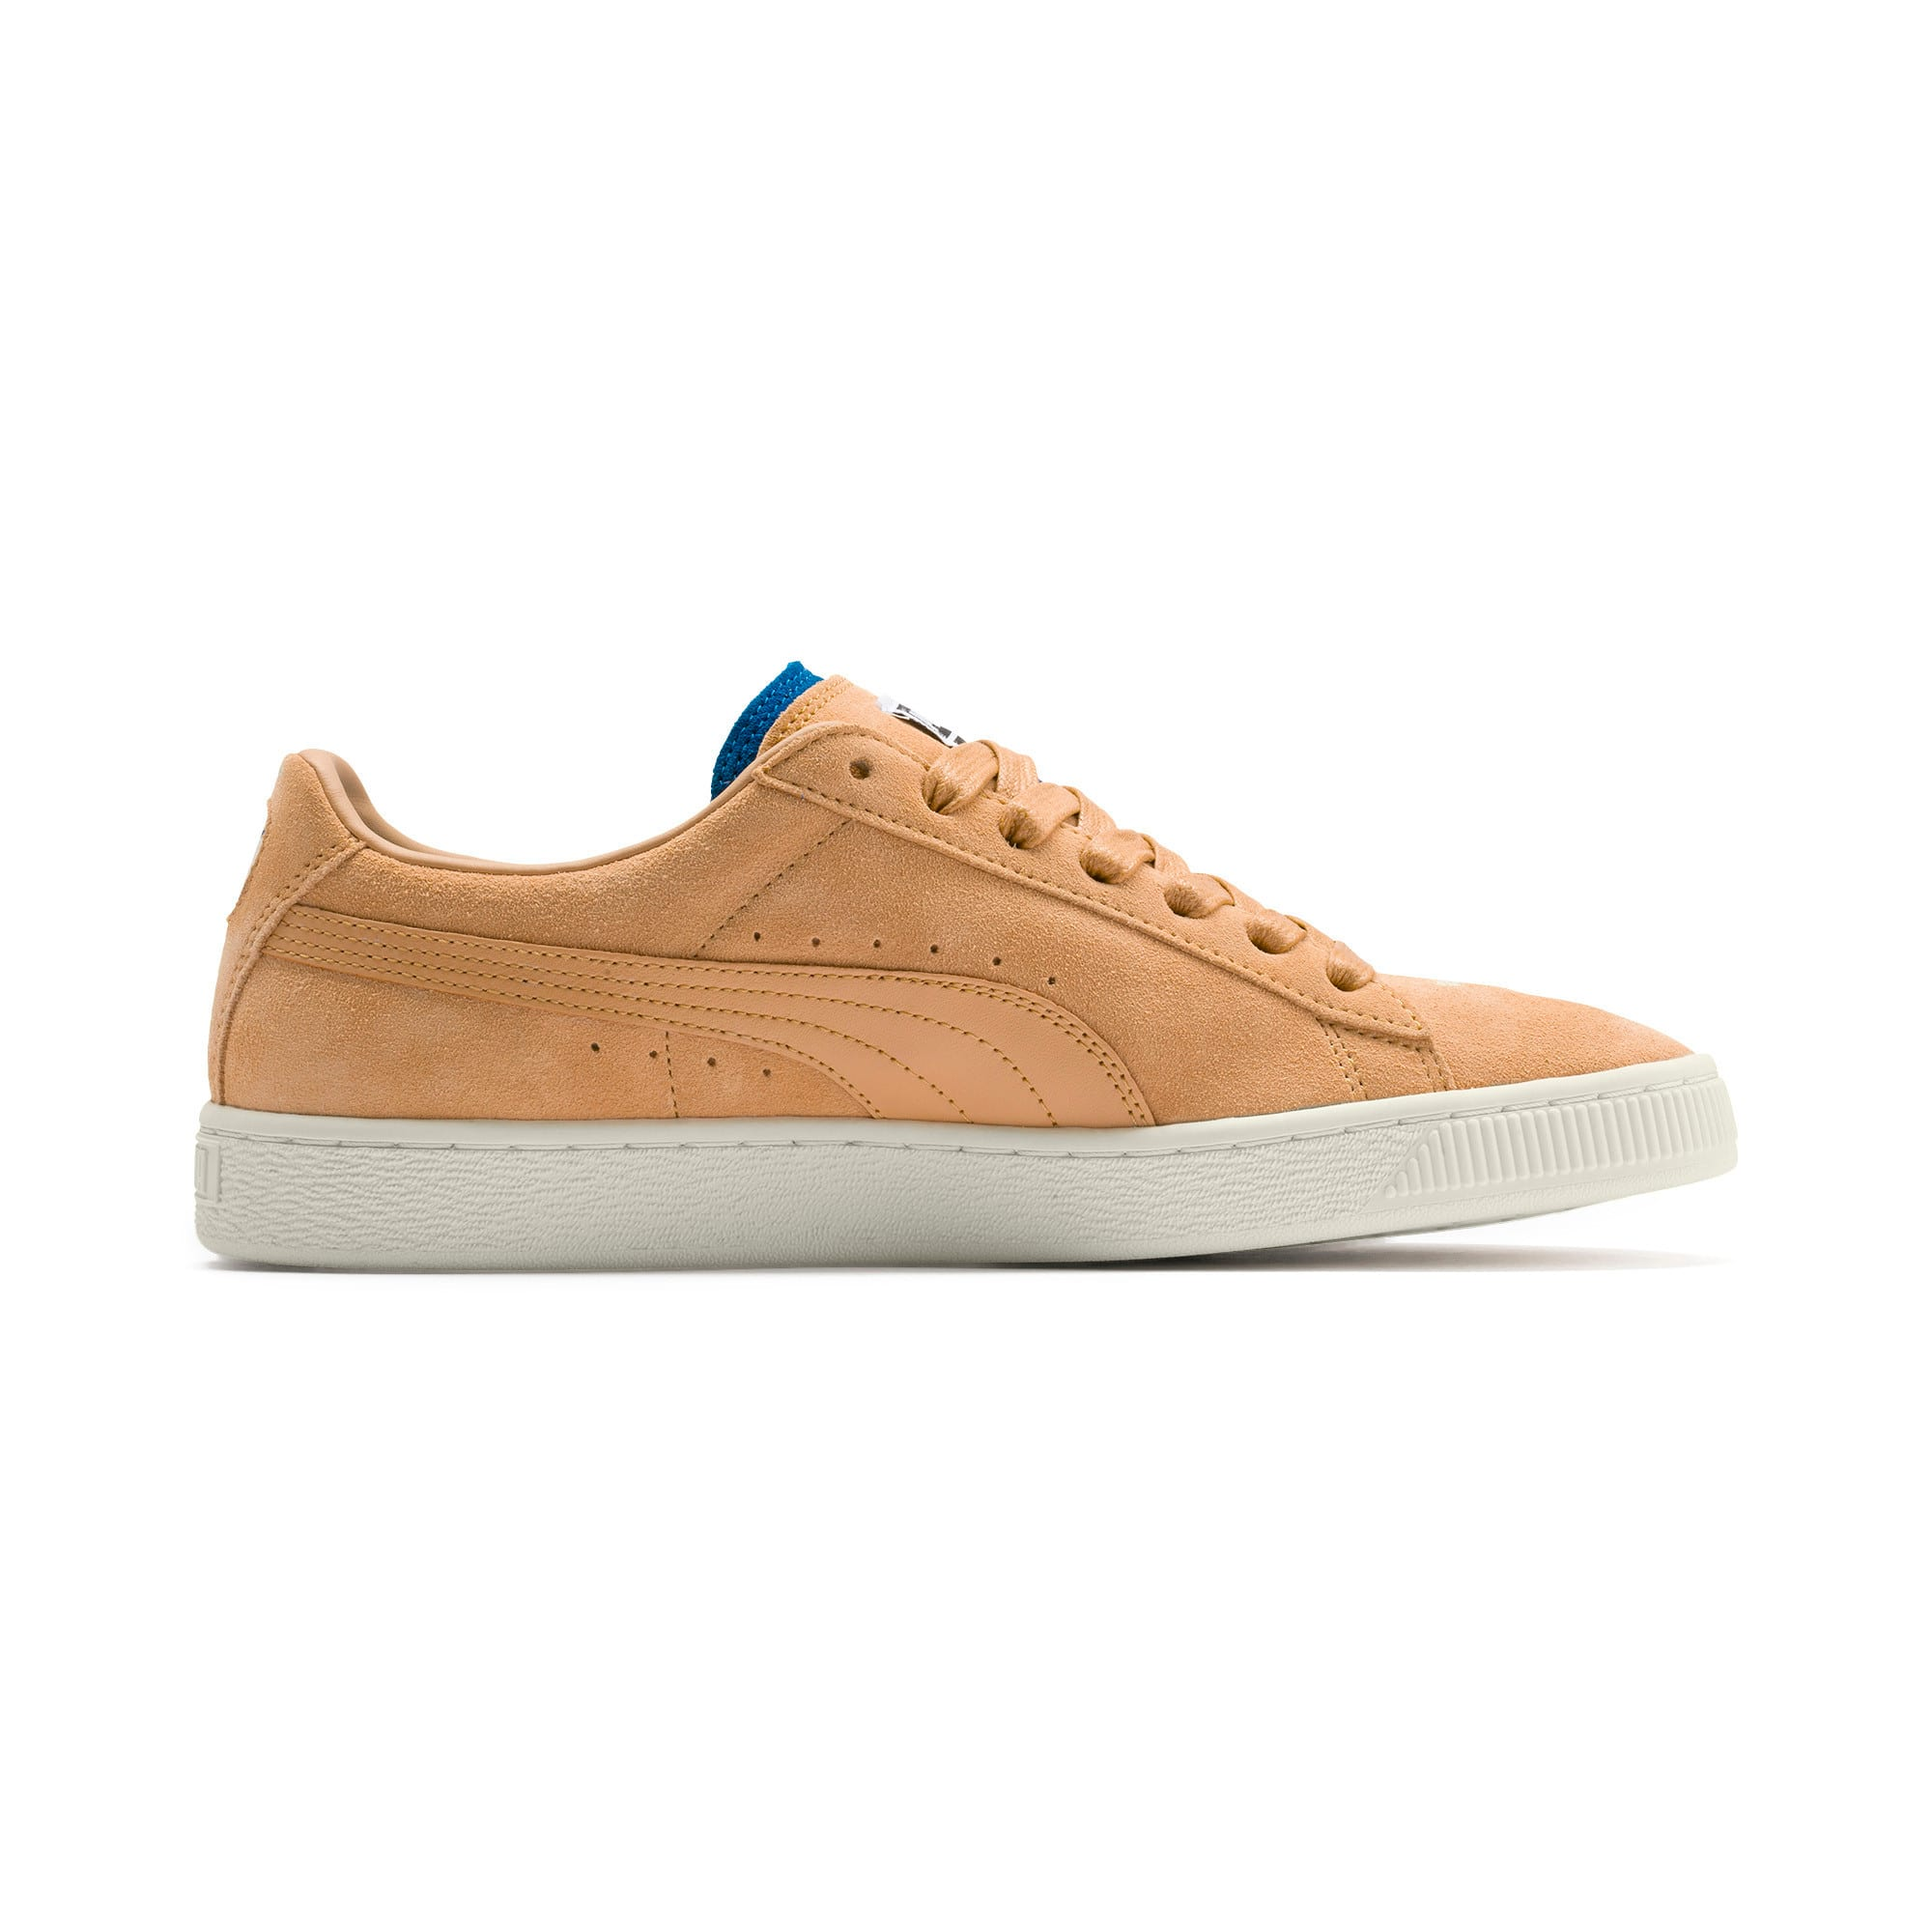 Thumbnail 5 of PUMA x ADER ERROR Suede Sneakers, Taffy, medium